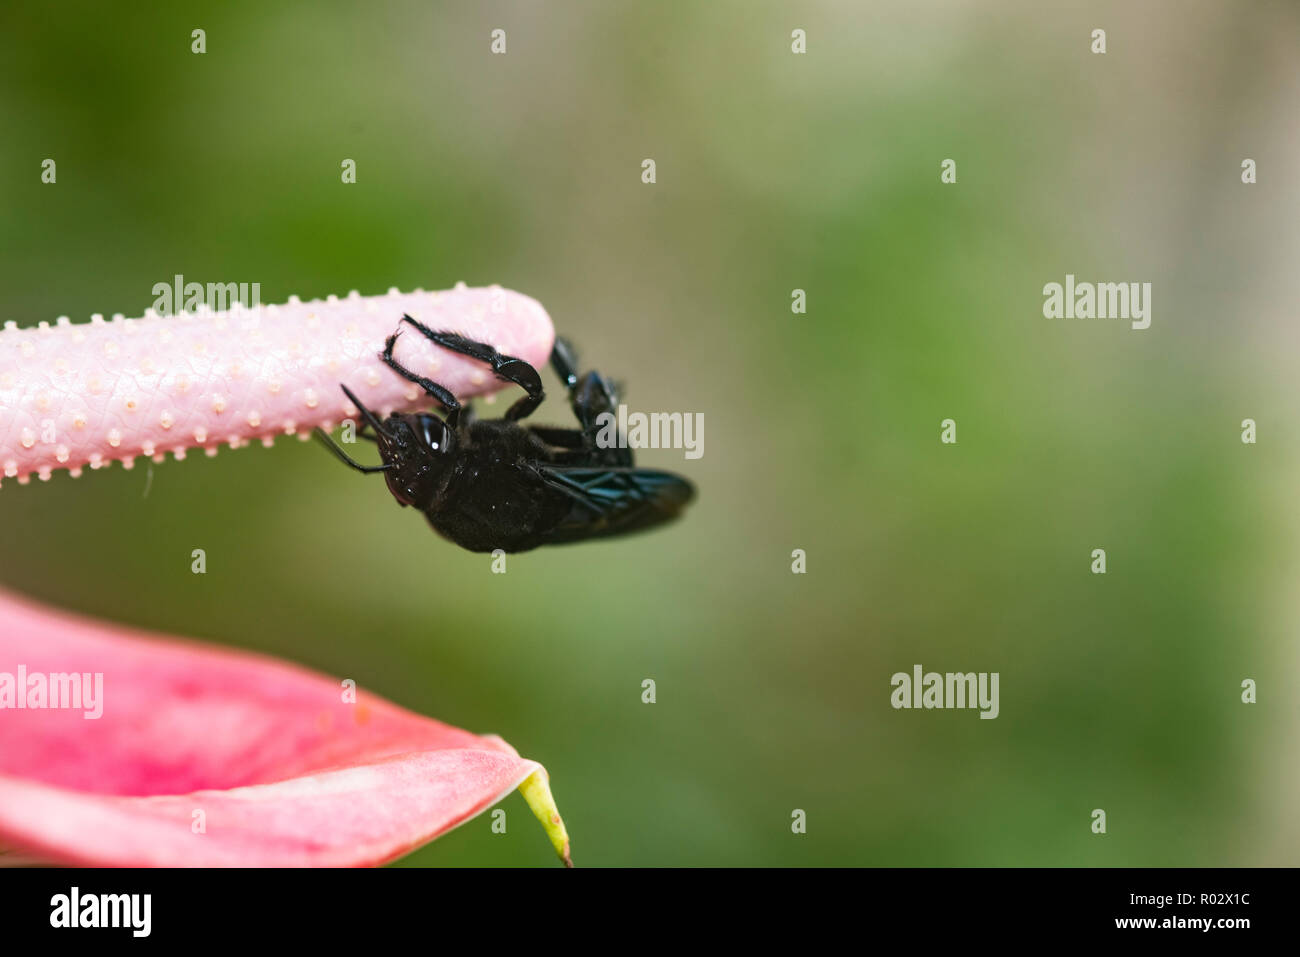 Black bumble bee, Bombus atratus, collecting pollen from the spadix of an anthurium flower Stock Photo